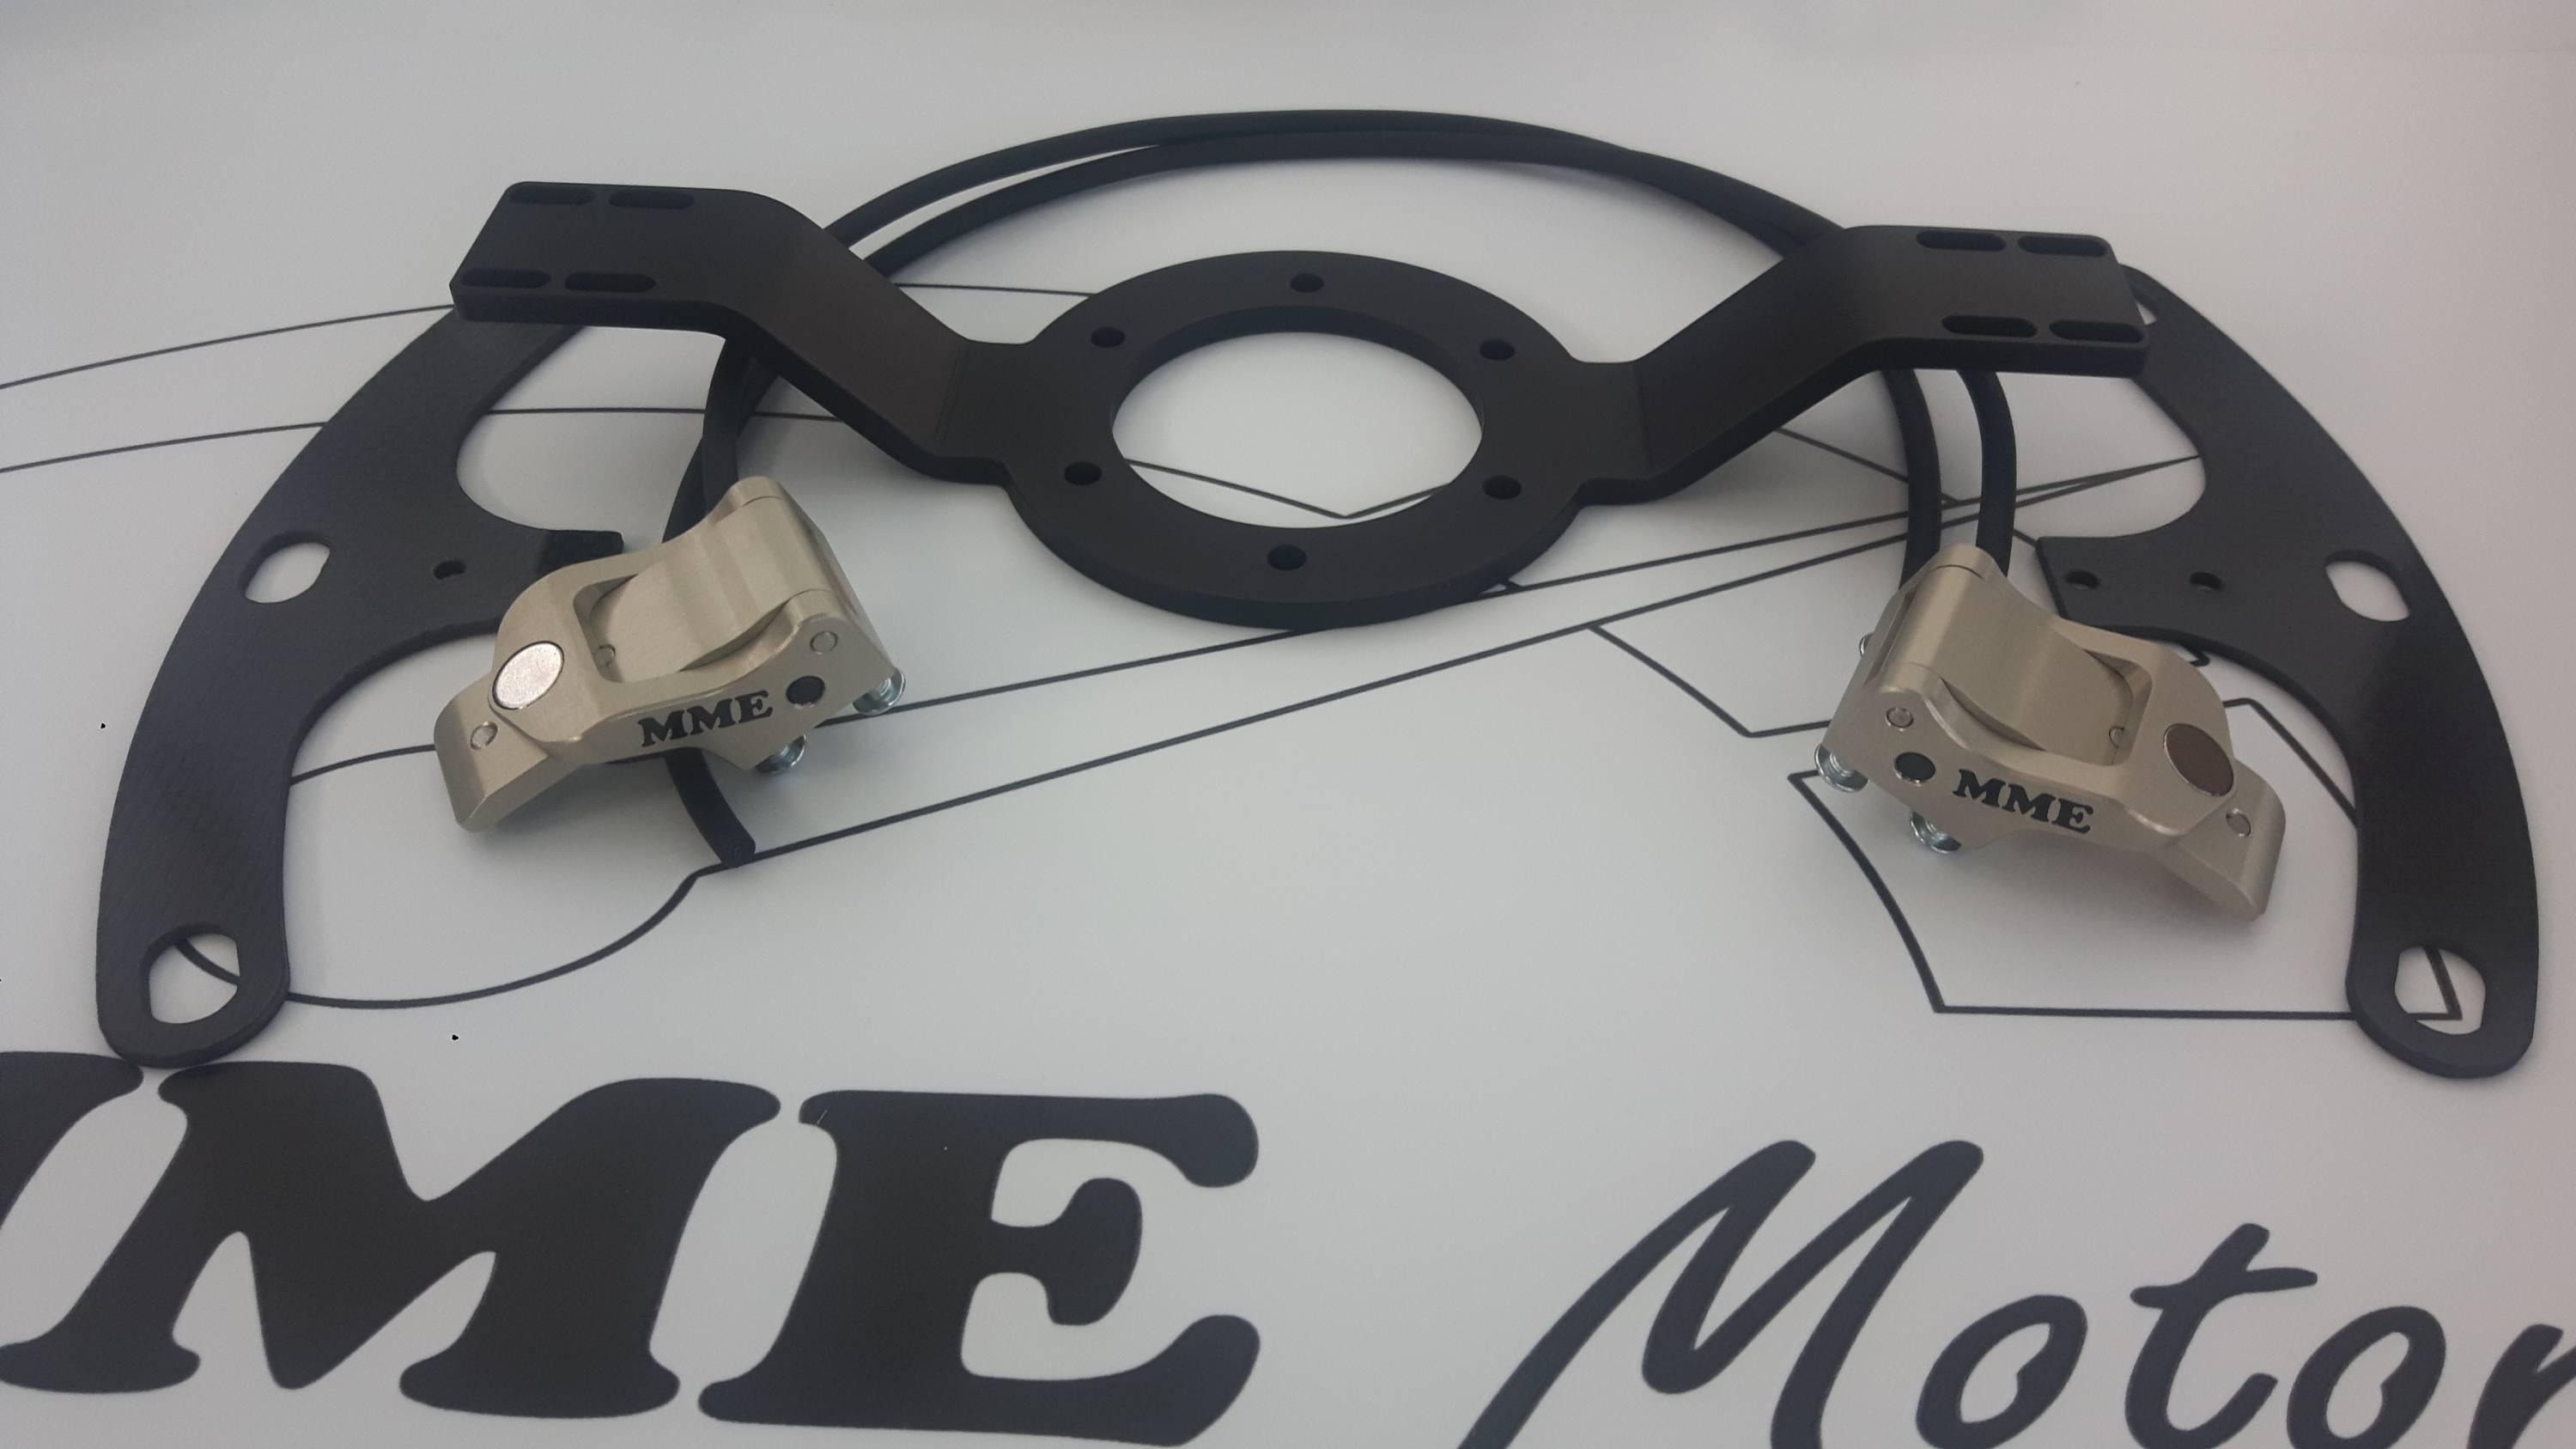 H Paddle Shifter Kit Mme Motorsport Subaru Coil Wiring Diagram More Details About The Universal Steering Wheel Paddles Or Wrc Style